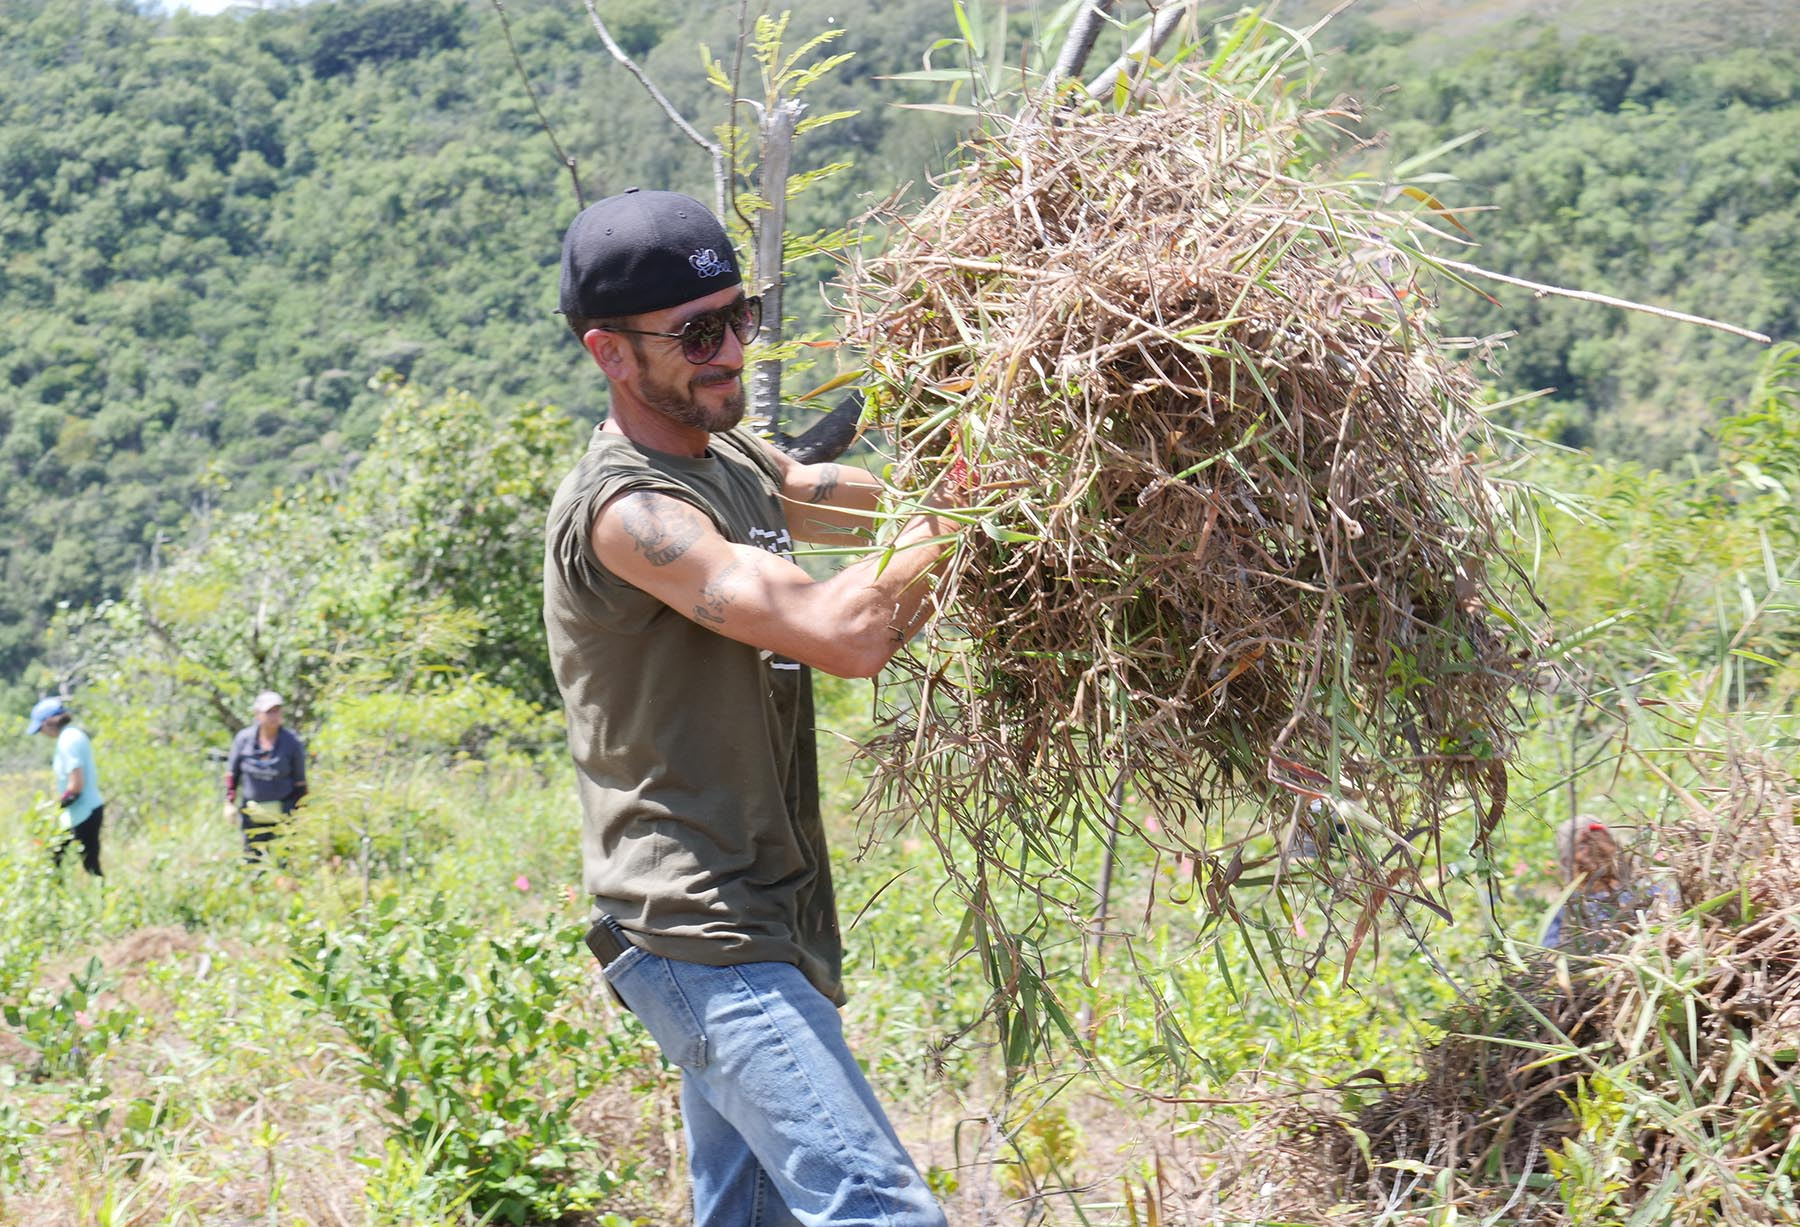 <p>Volunteer Shan Shamim of Honolulu moves a pile of invasive weeds. The regularly scheduled workdays are meant to care for and protect rare and endangered species of plants and animals in the valley and are open to volunteers ages 12 and up.</p>